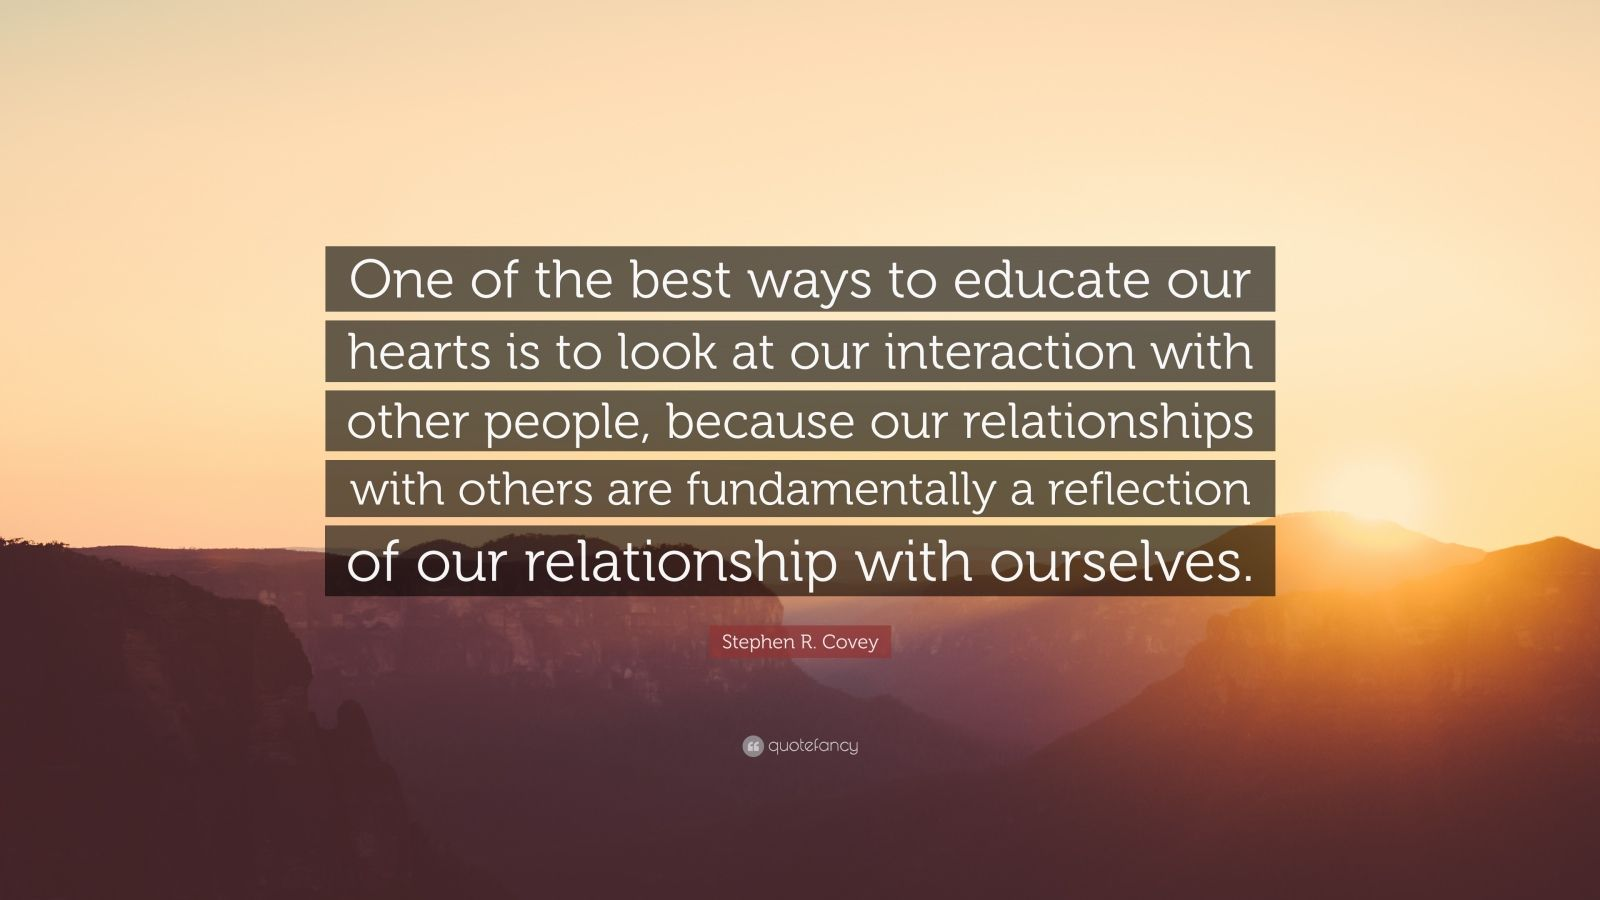 """Stephen R. Covey Quote: """"One of the best ways to educate our hearts is to look at our interaction with other people, because our relationships with others are fundamentally a reflection of our relationship with ourselves."""""""